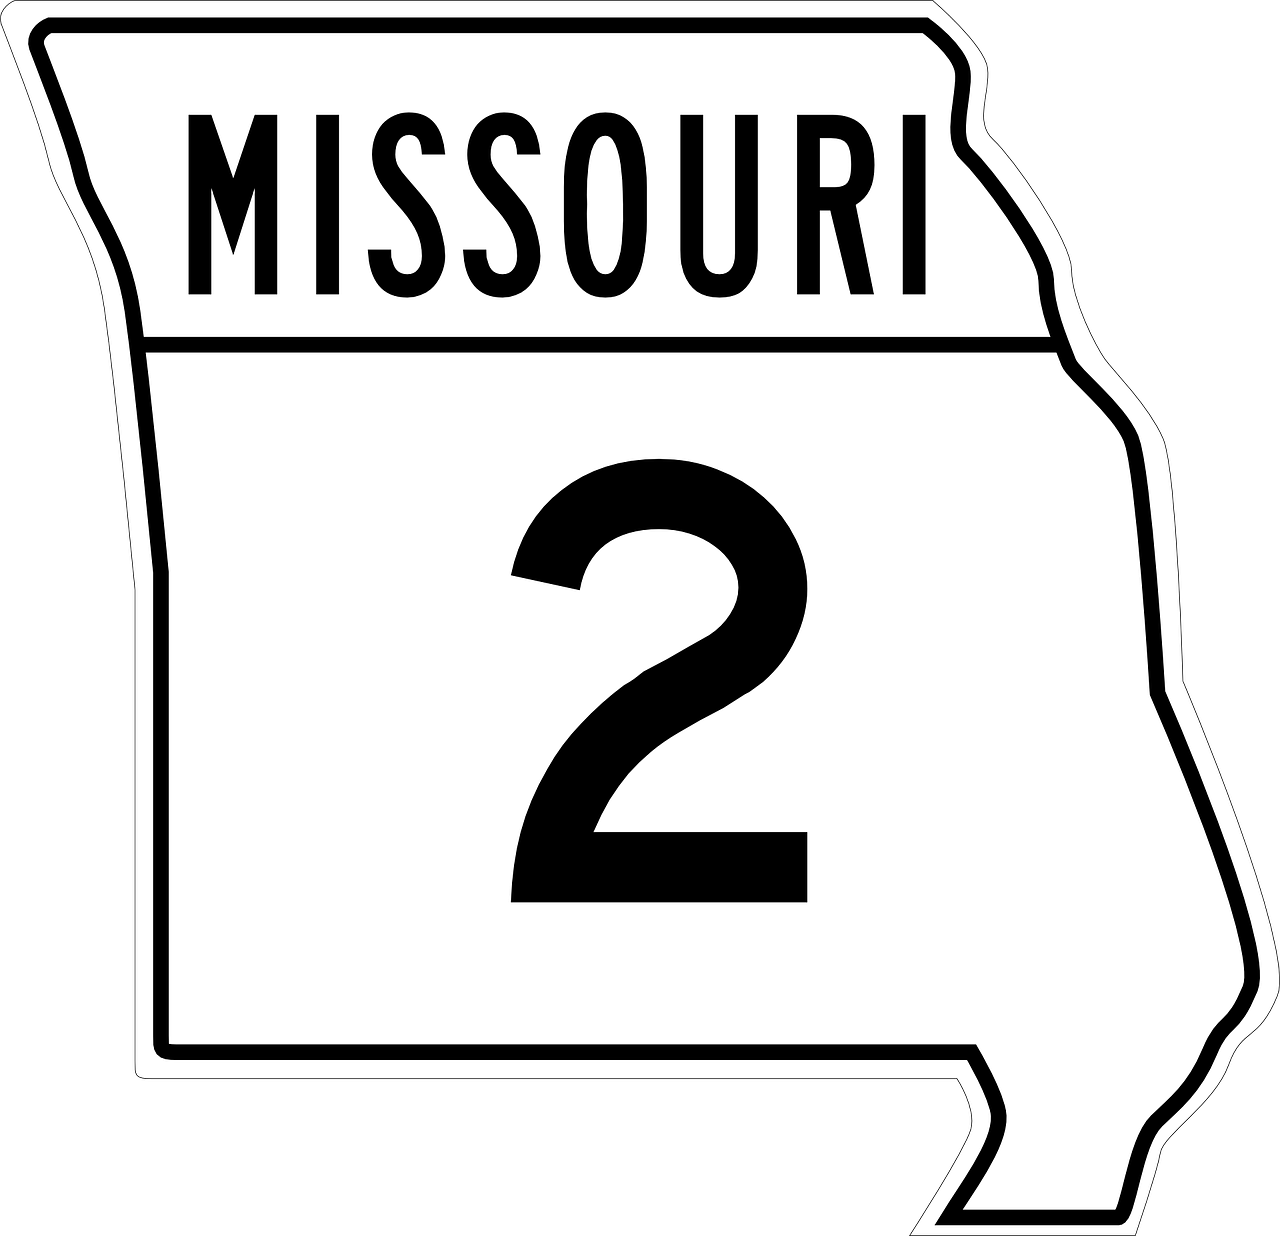 missouri,state,traffic,transportation,road,sign,border,usa,territory,free vector graphics,free pictures, free photos, free images, royalty free, free illustrations, public domain